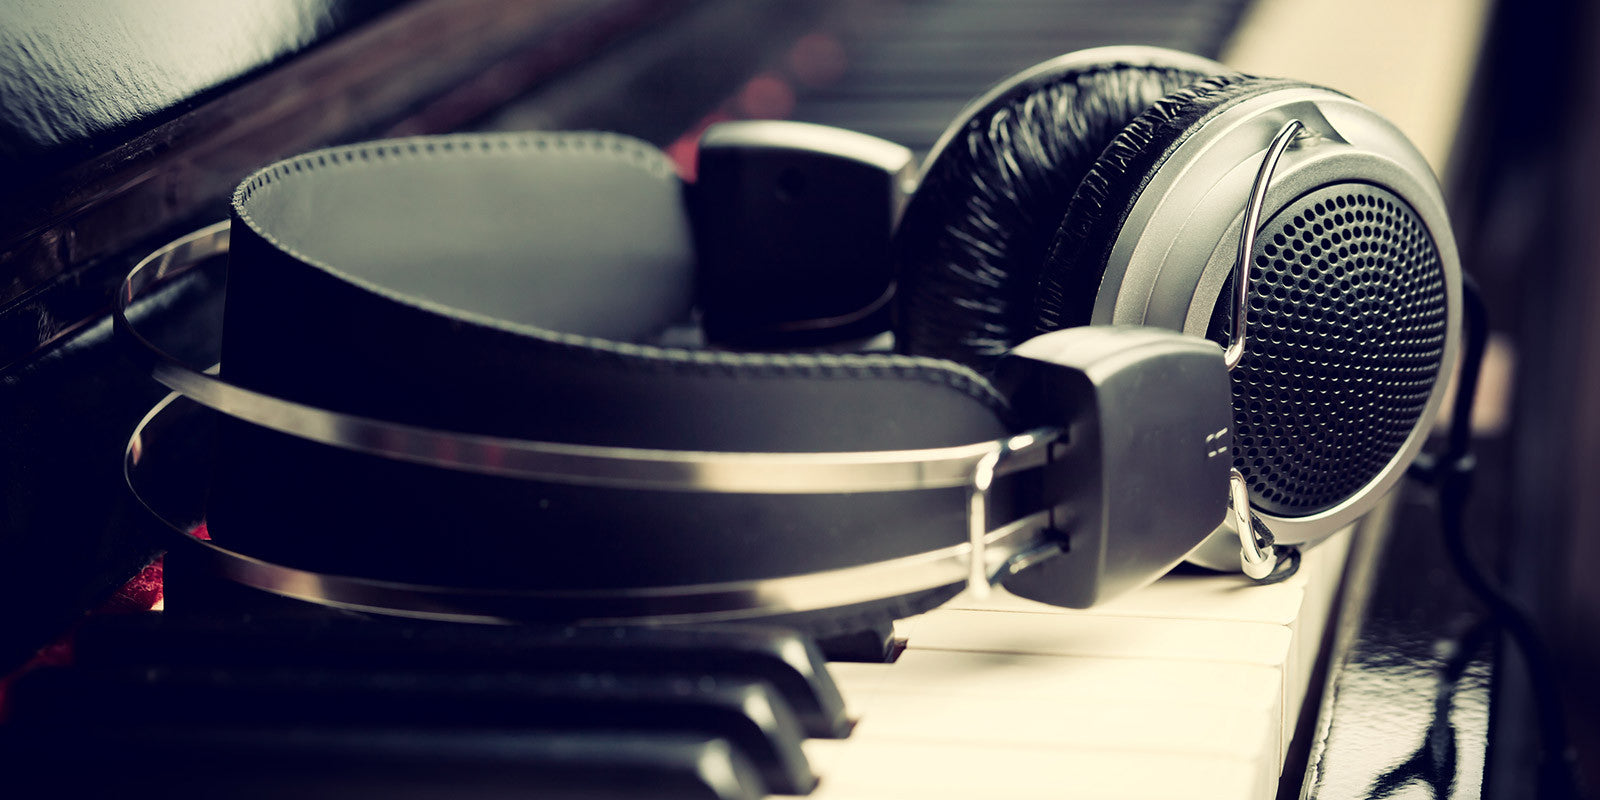 The types of headset used for music and voice files